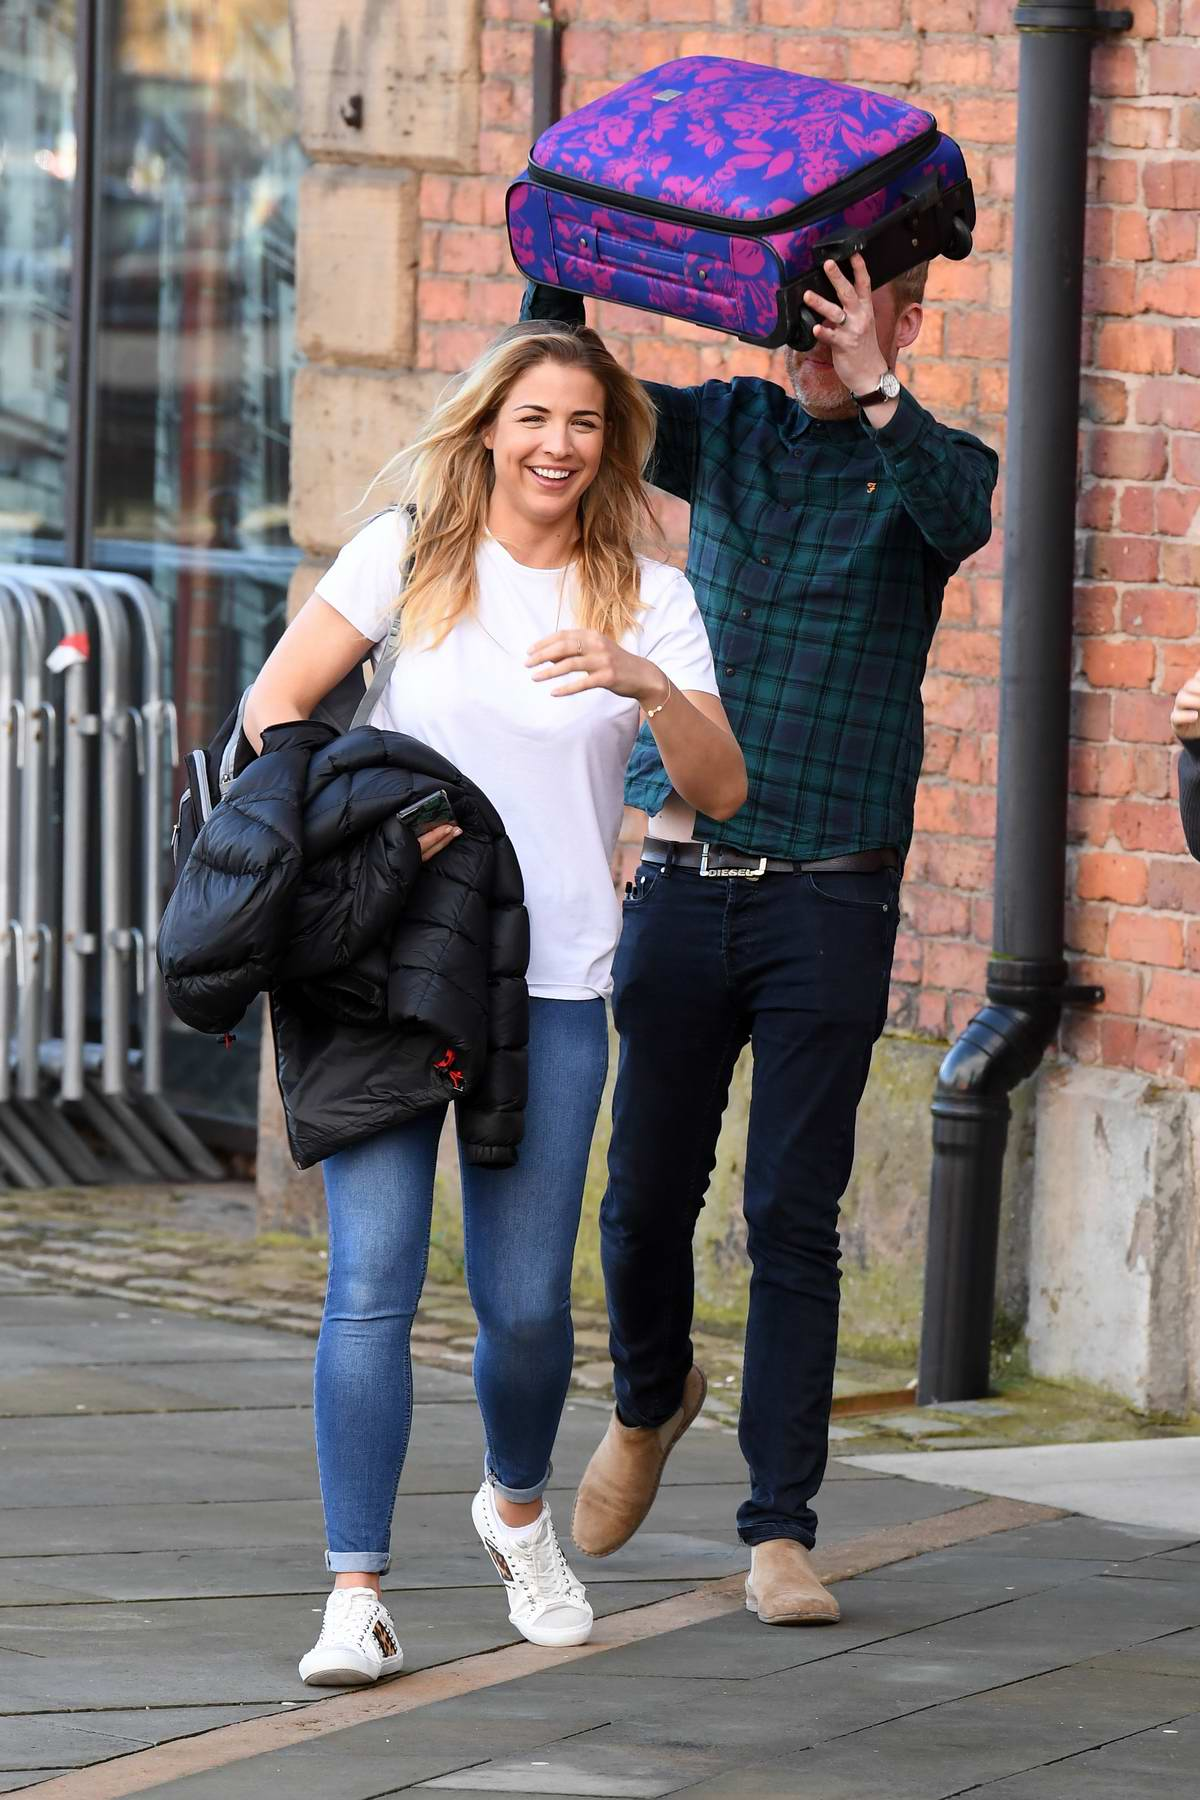 Gemma Atkinson is all smiles as she leaves Key 103 Radio in Manchester, UK